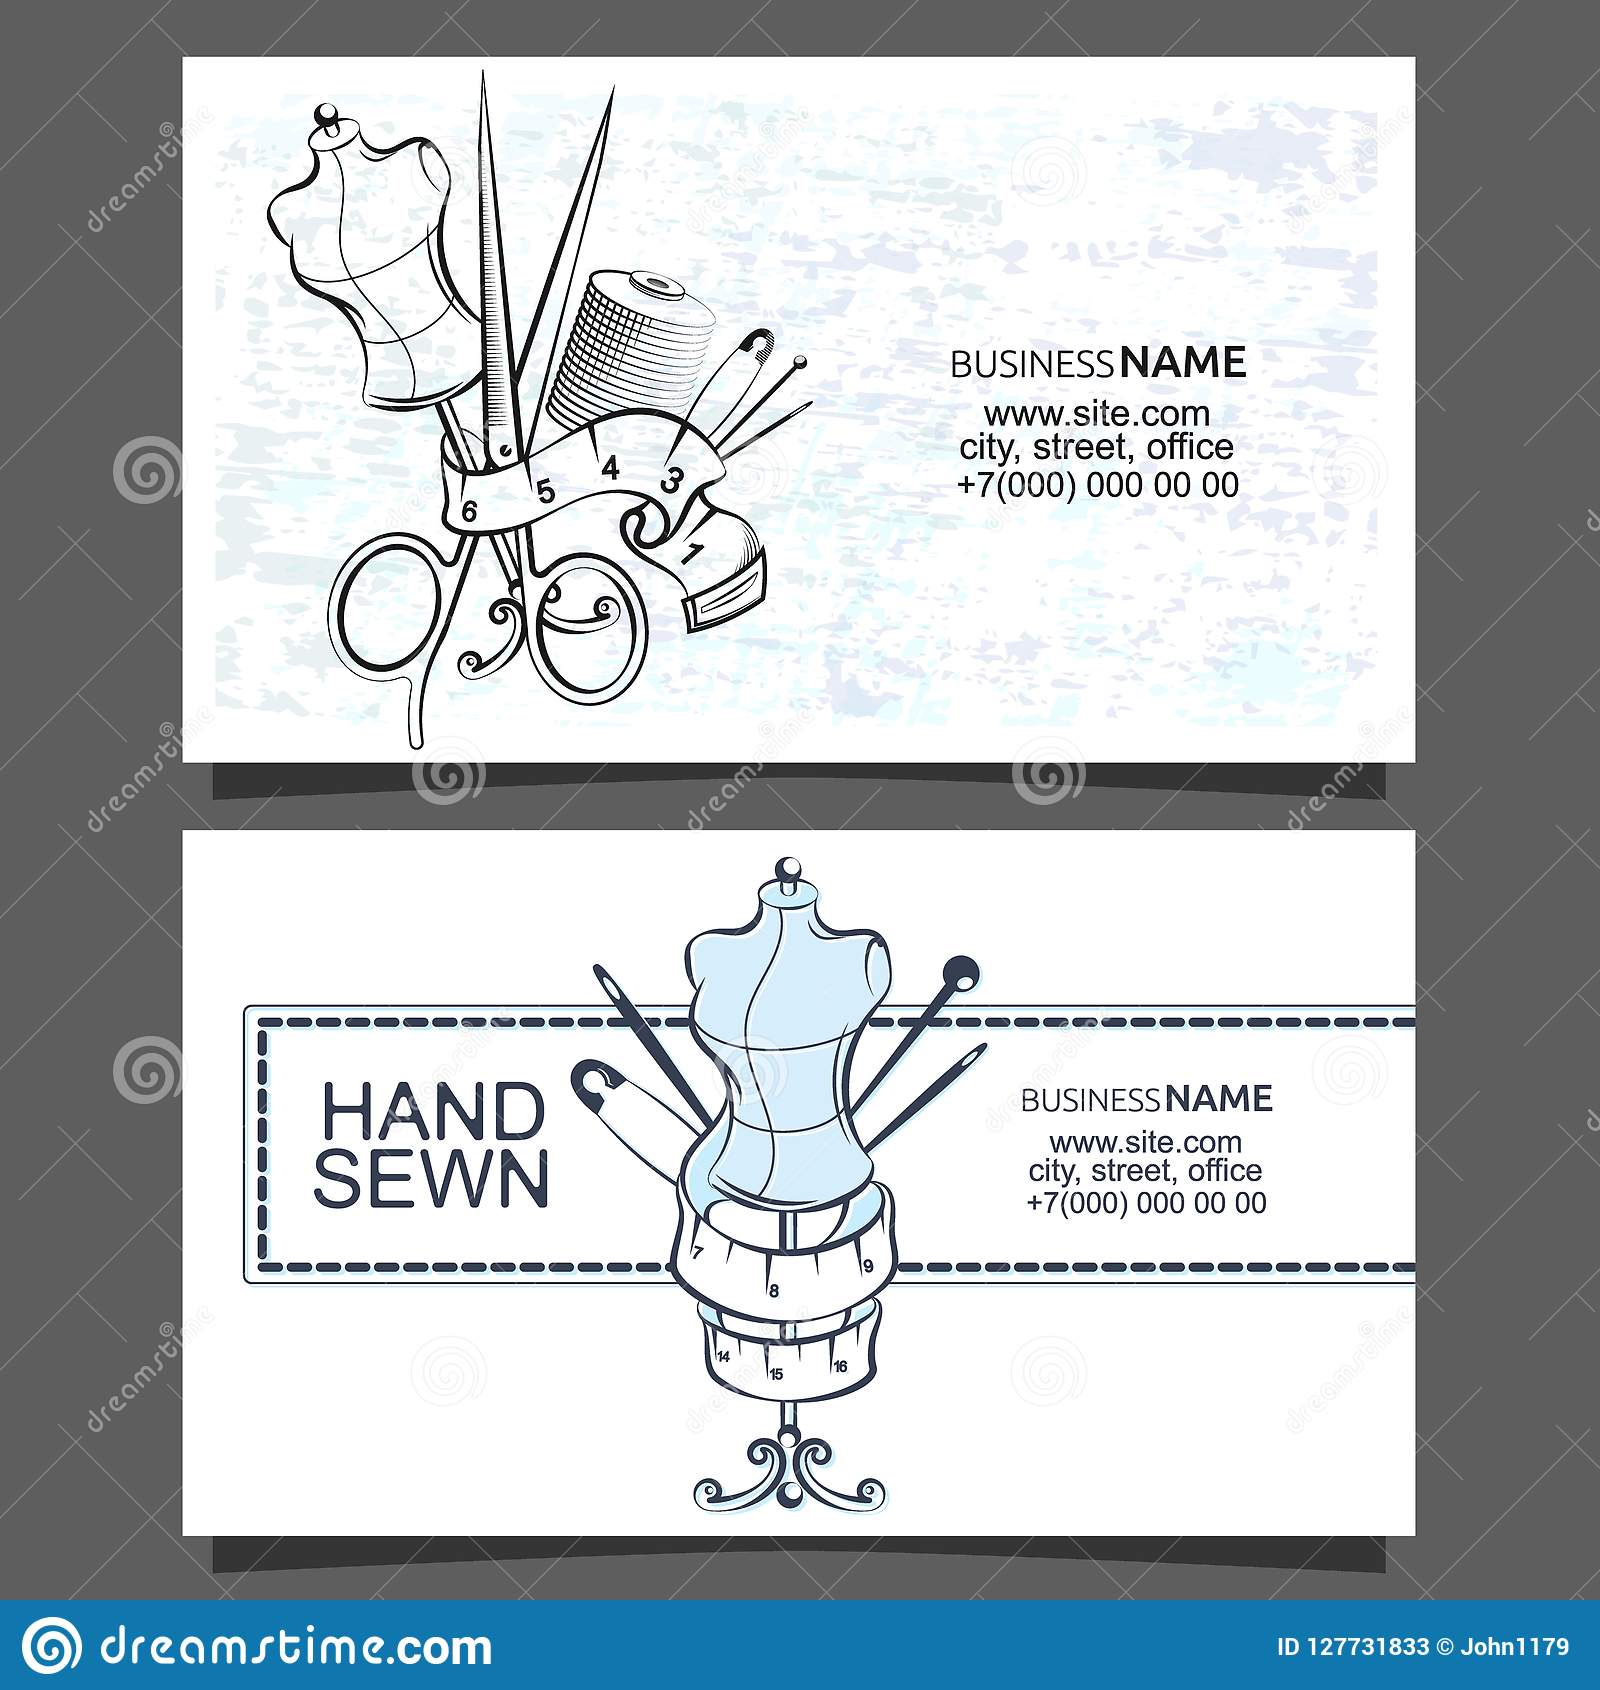 Sewing And Cutting Of Business Cards Stock Vector Illustration Of